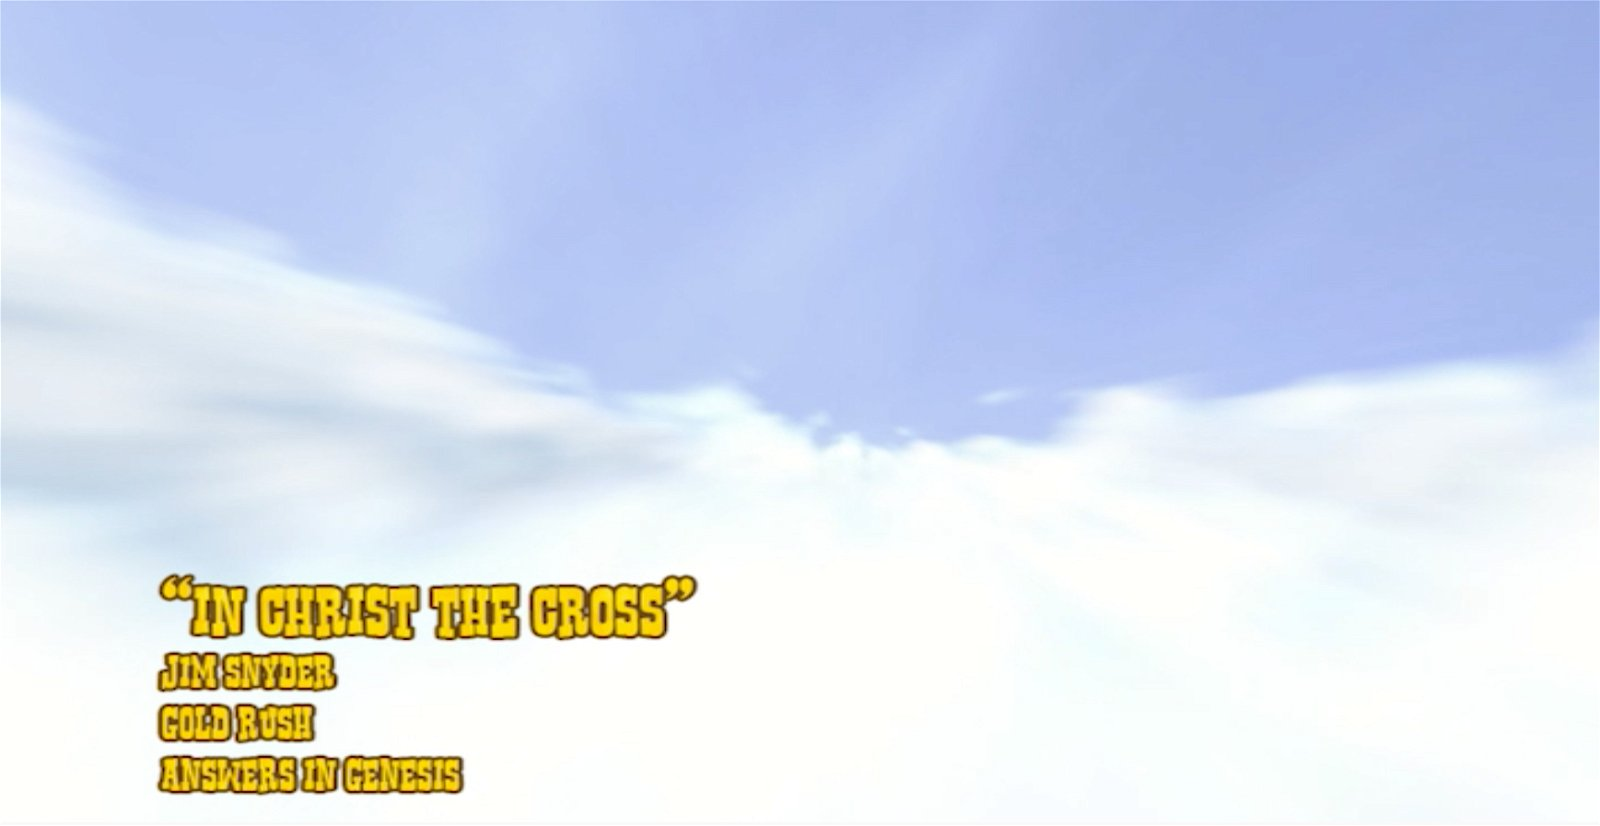 In Christ the Cross (Lyrics Video)